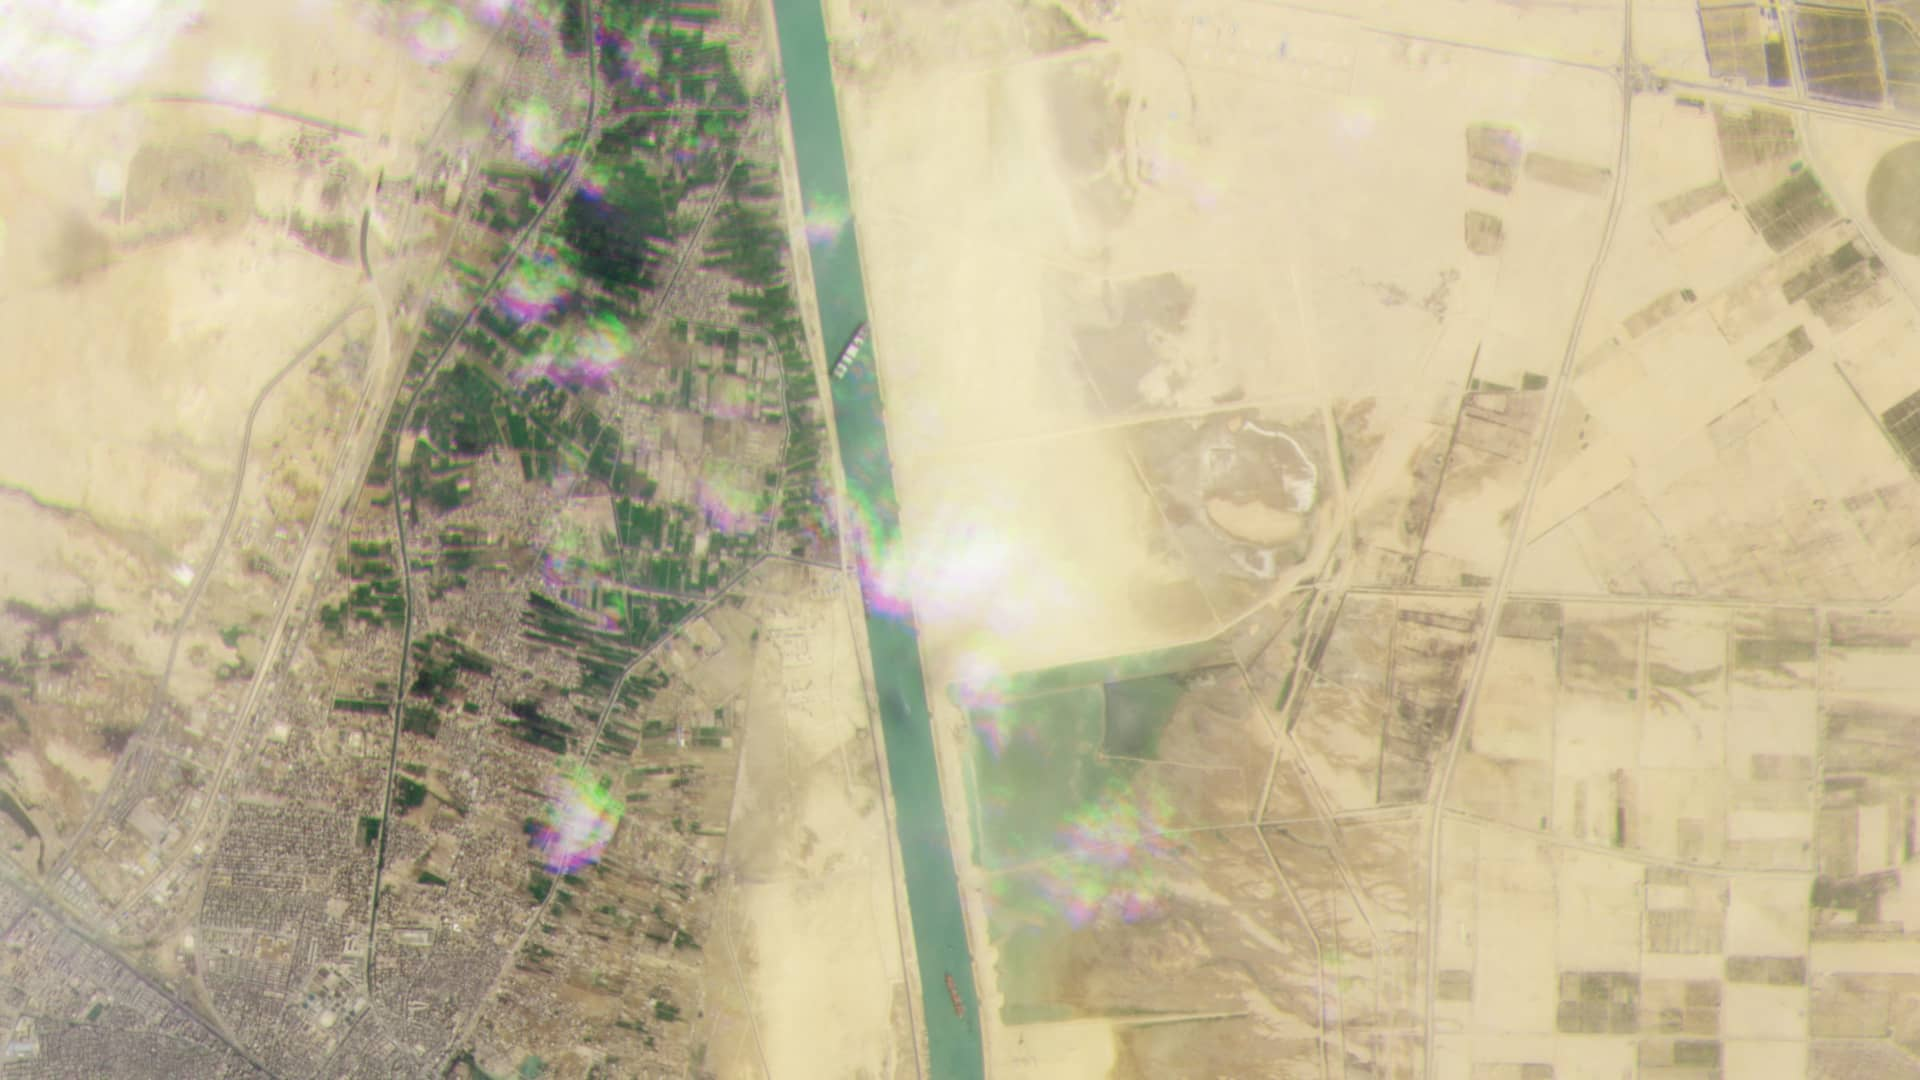 Satellite imagery captured on March 23, 2021 shows the cargo container ship Ever Given blocking the Suez Canal in Egypt.